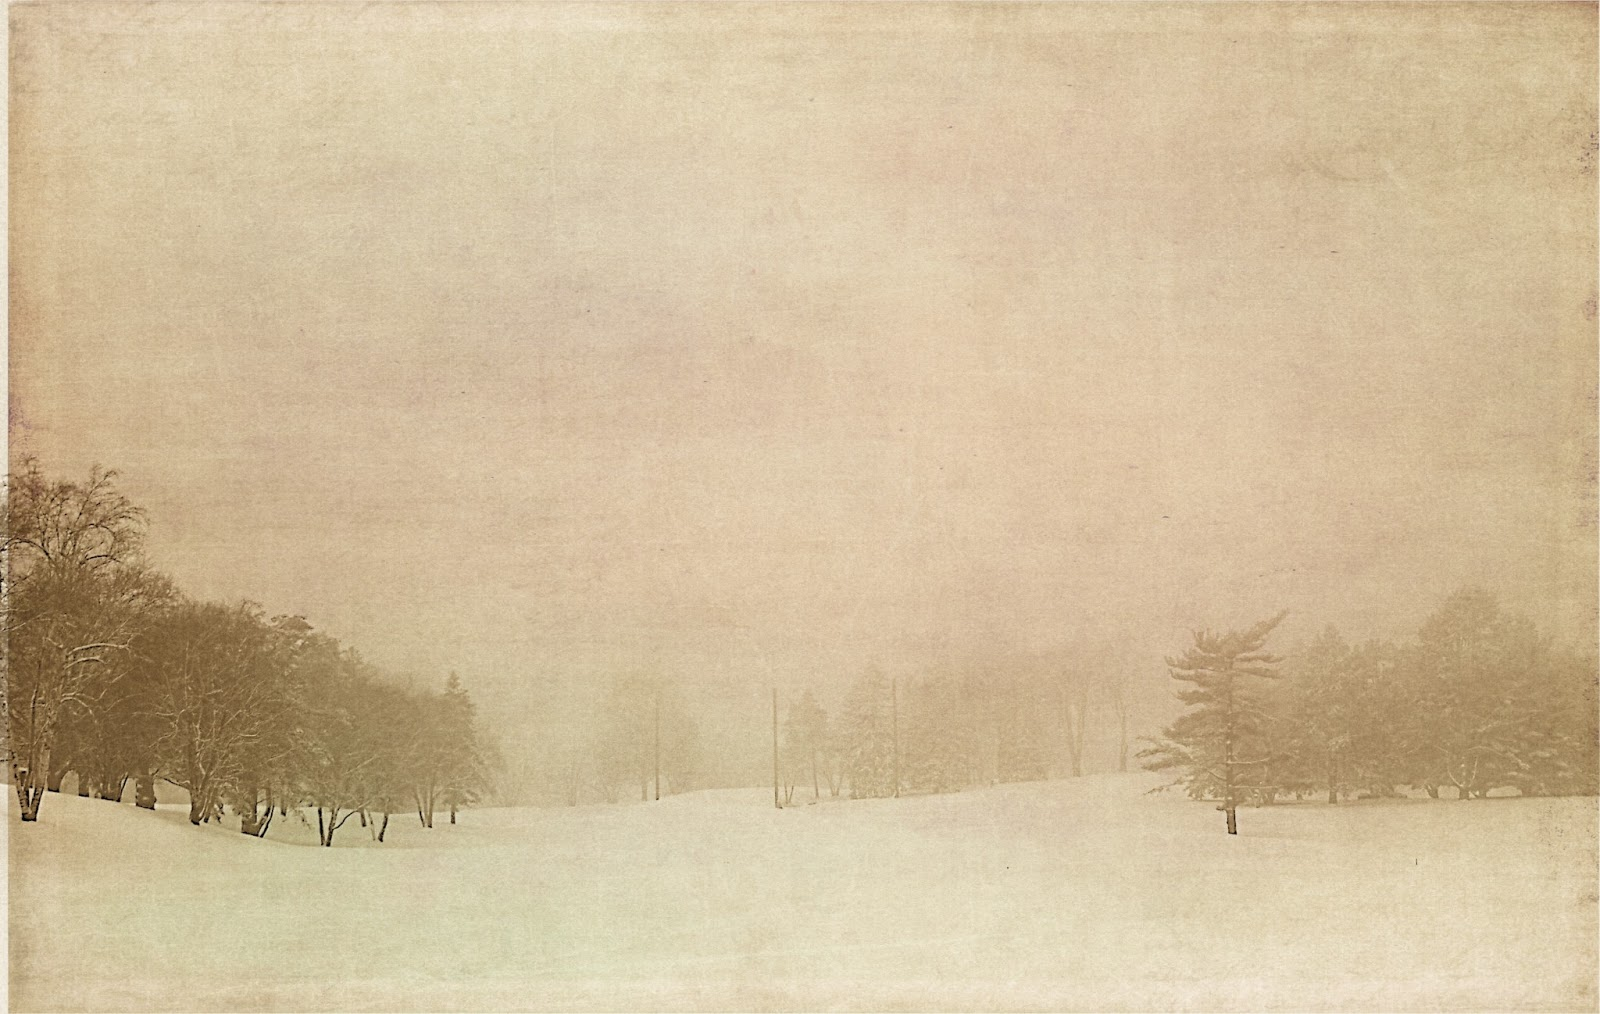 snowy landscape with texture